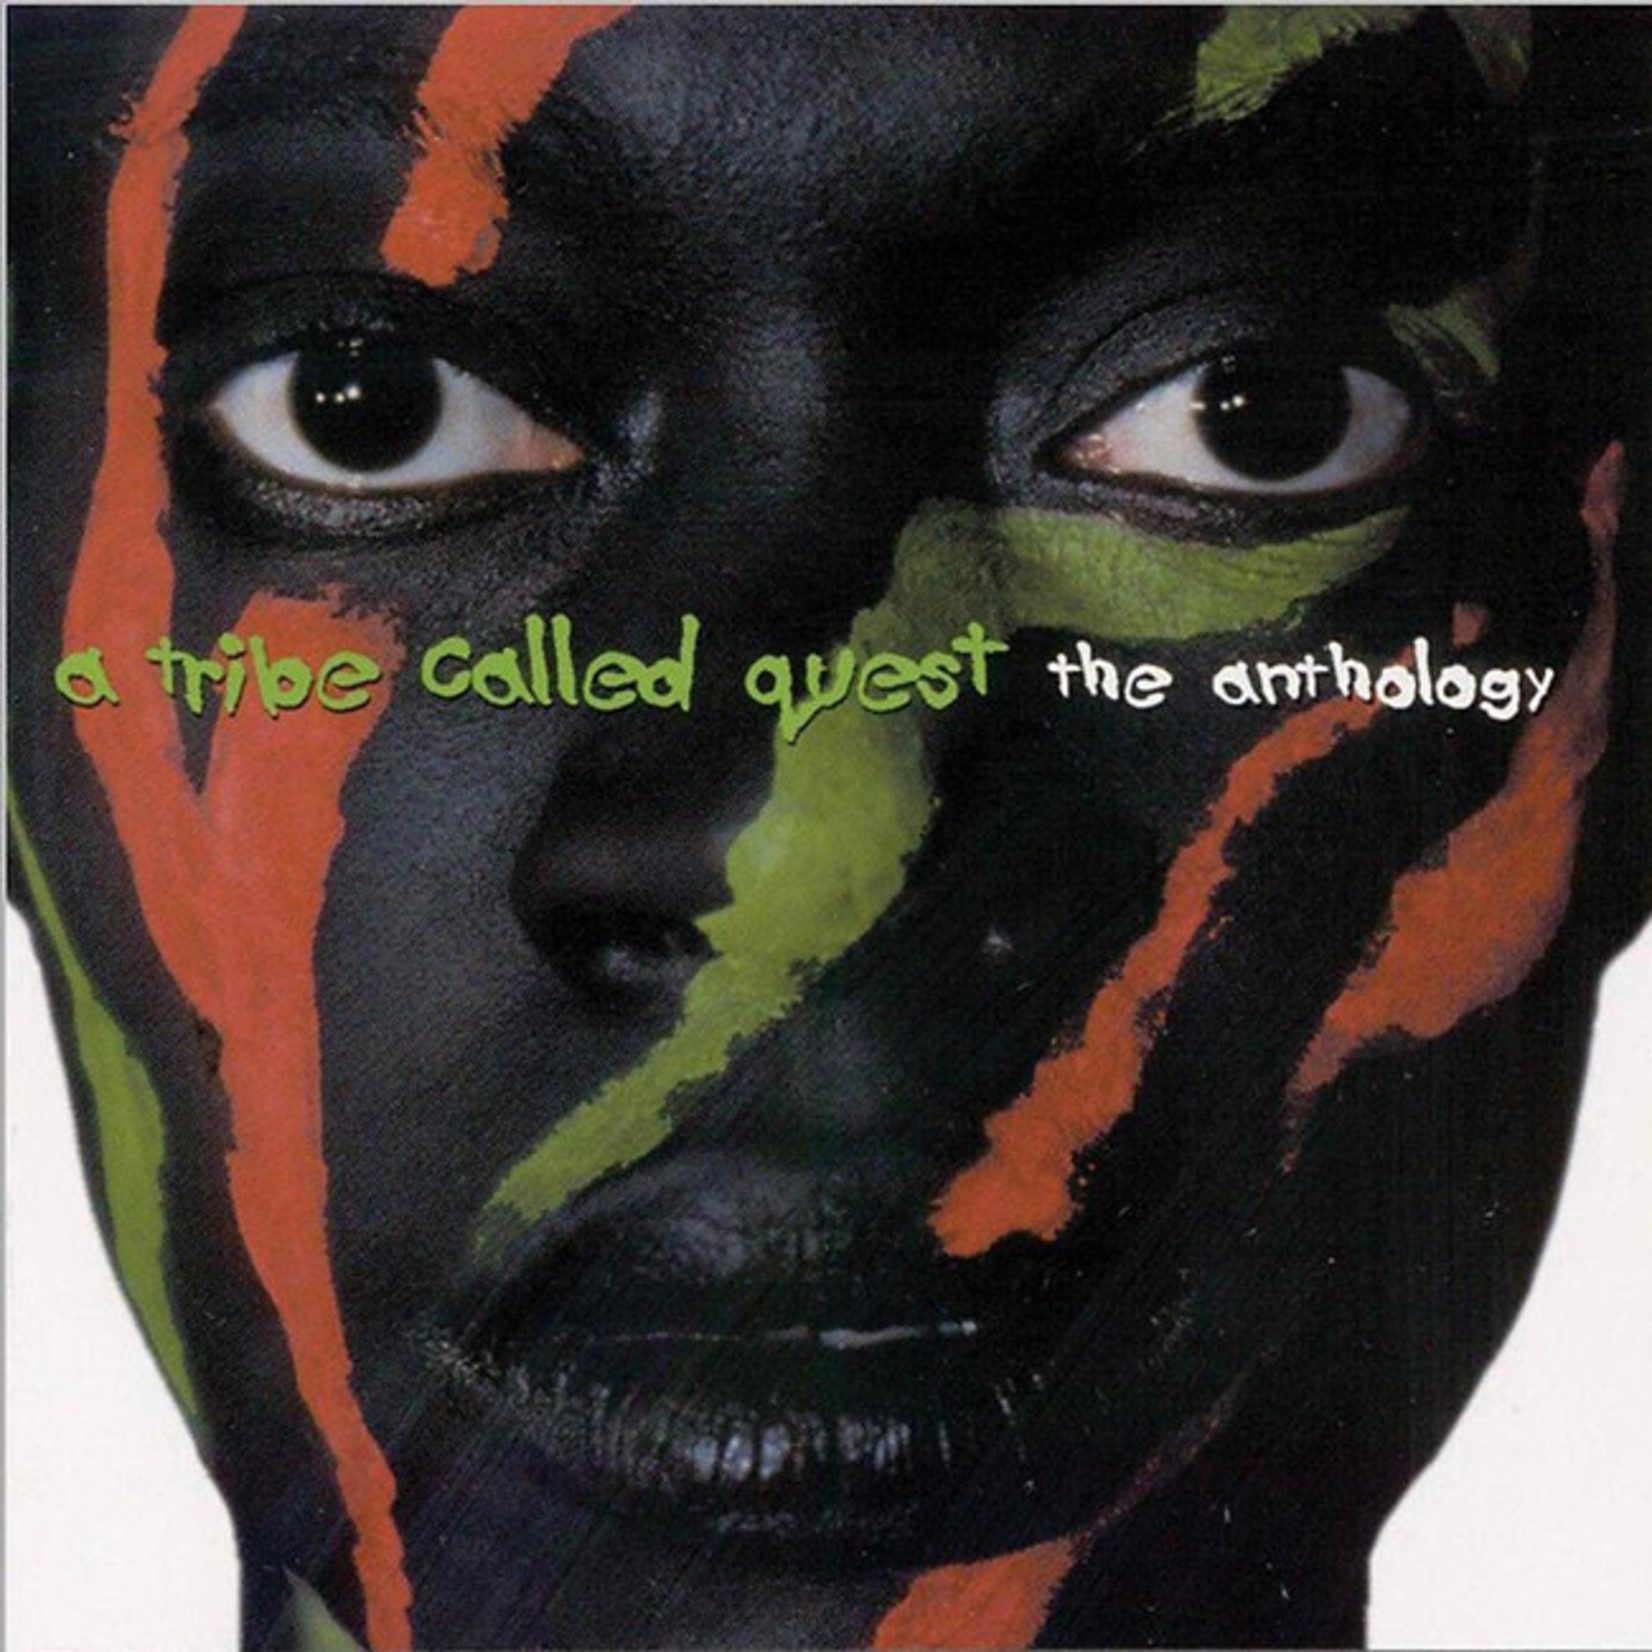 [New] A Tribe Called Quest: The Anthology (2LP)